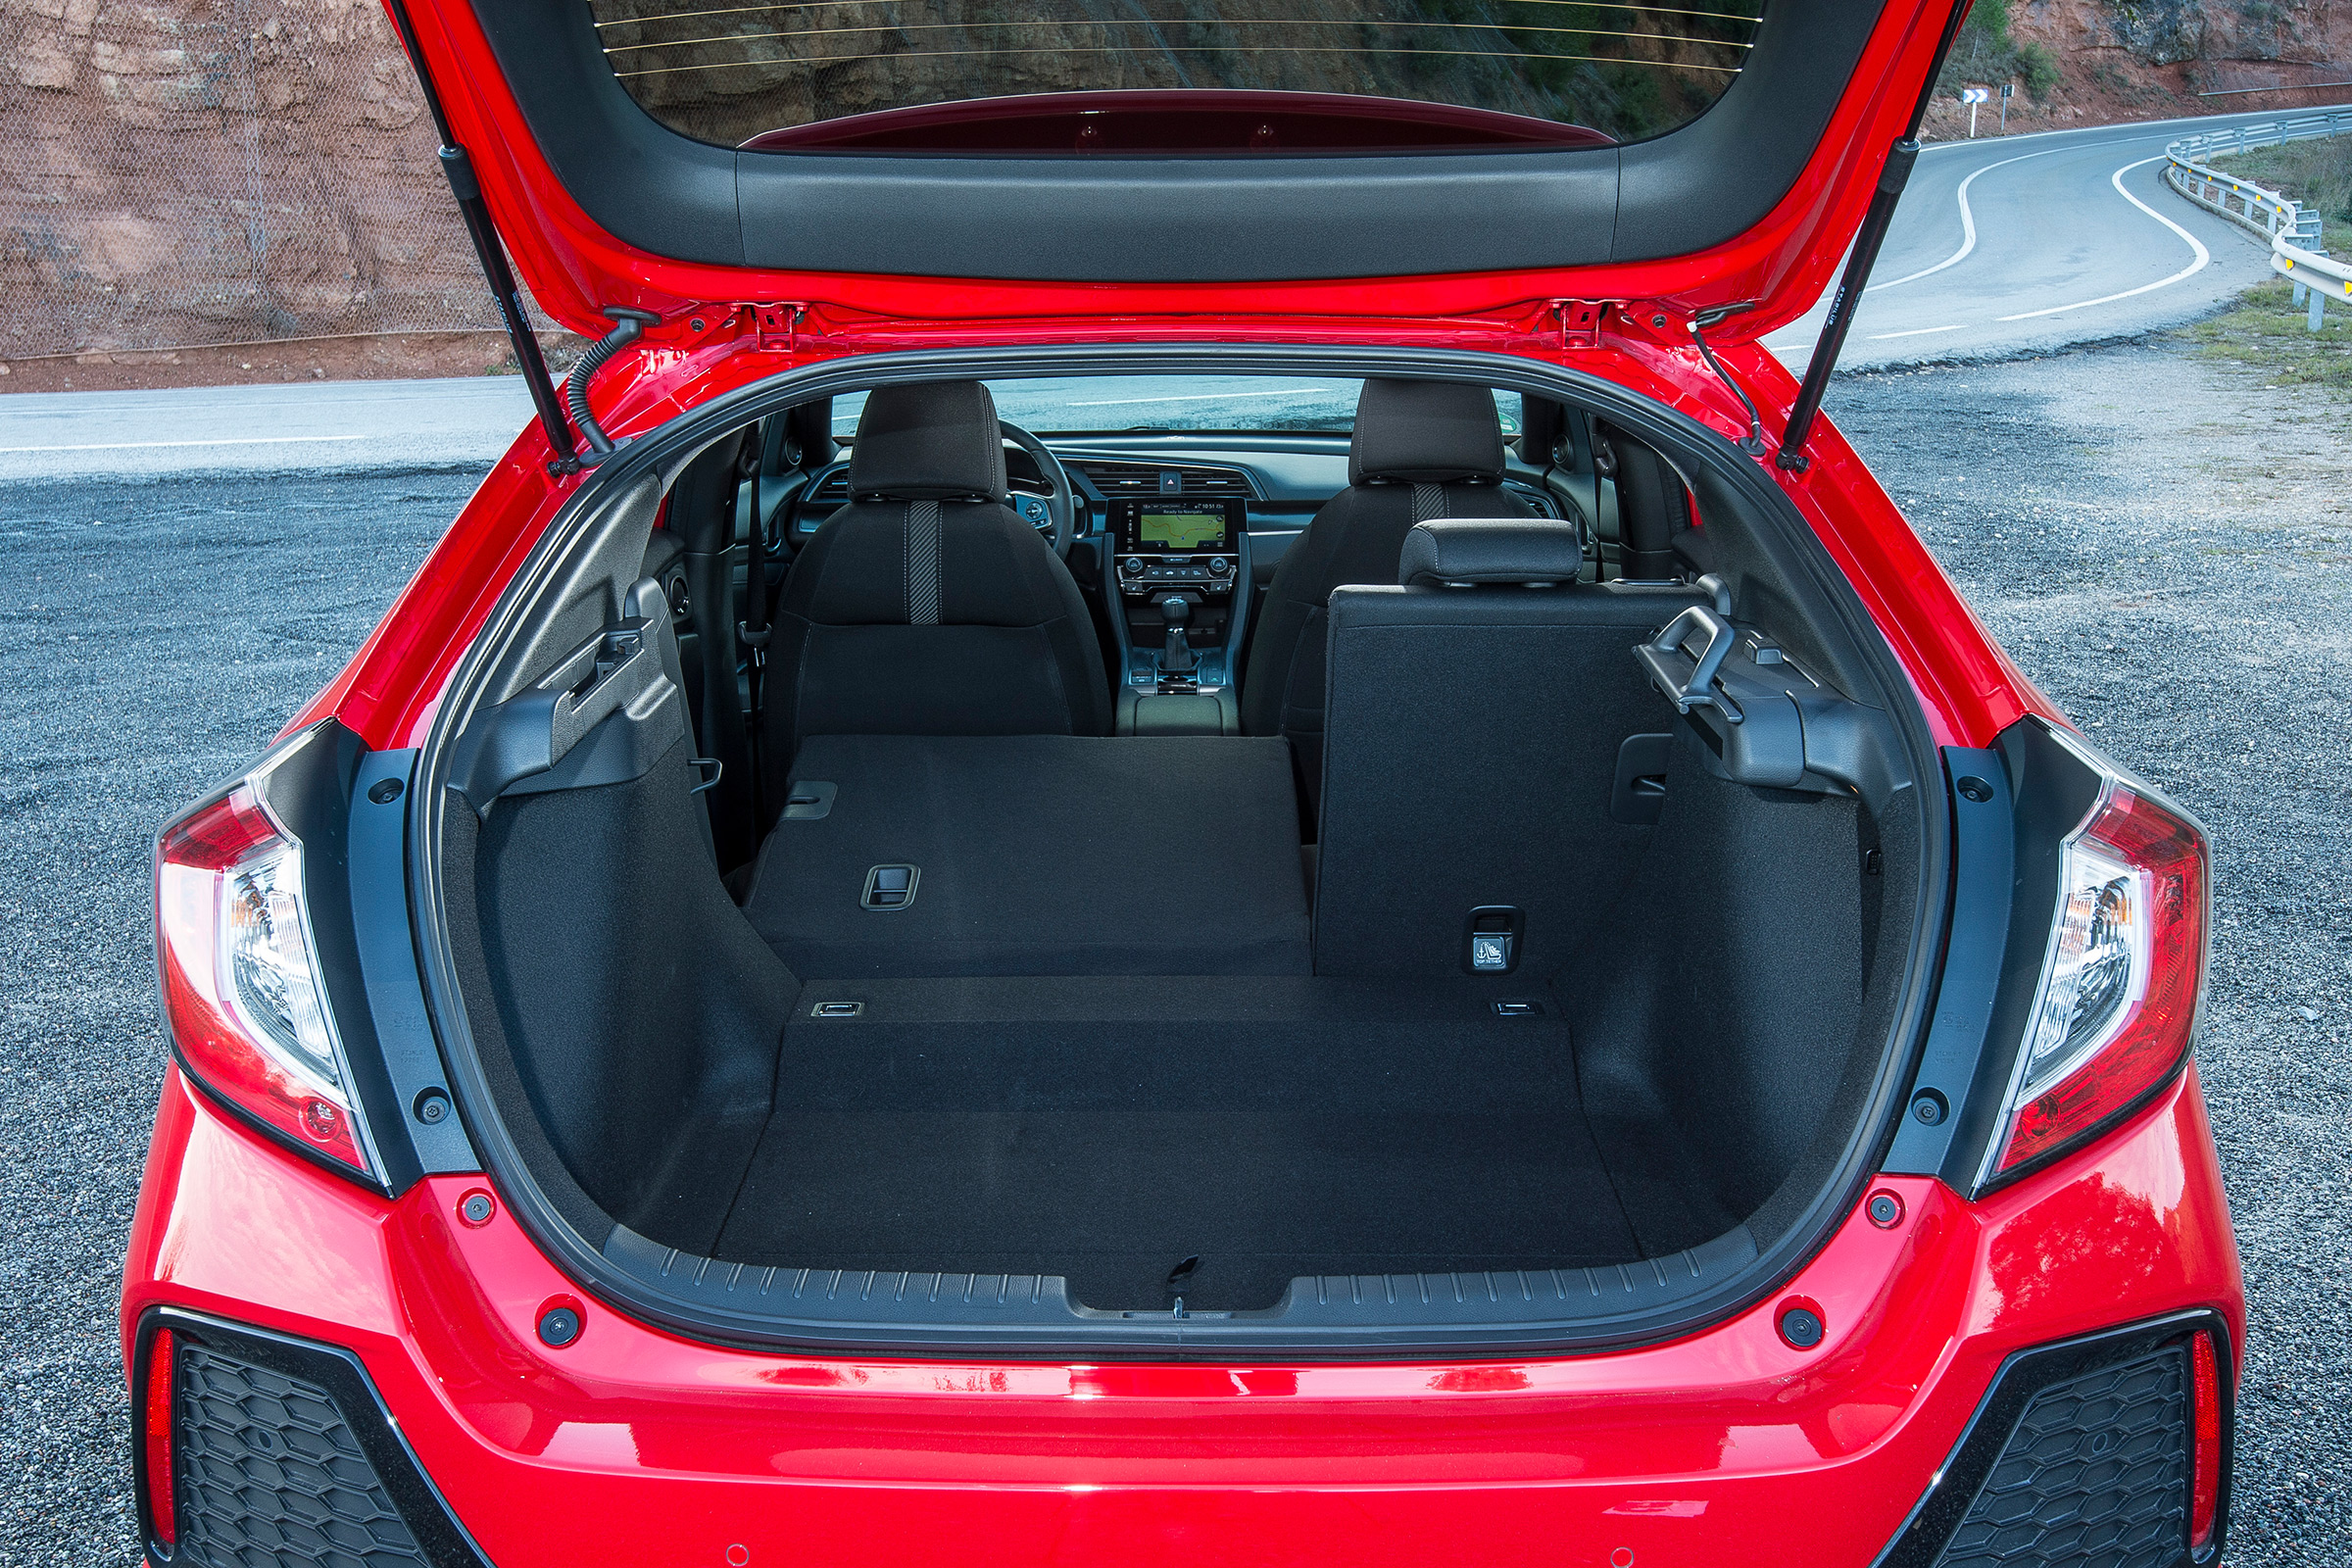 2017 Honda Civic Hatchback Red Interior View Cargo Trunk (Photo 30 of 34)